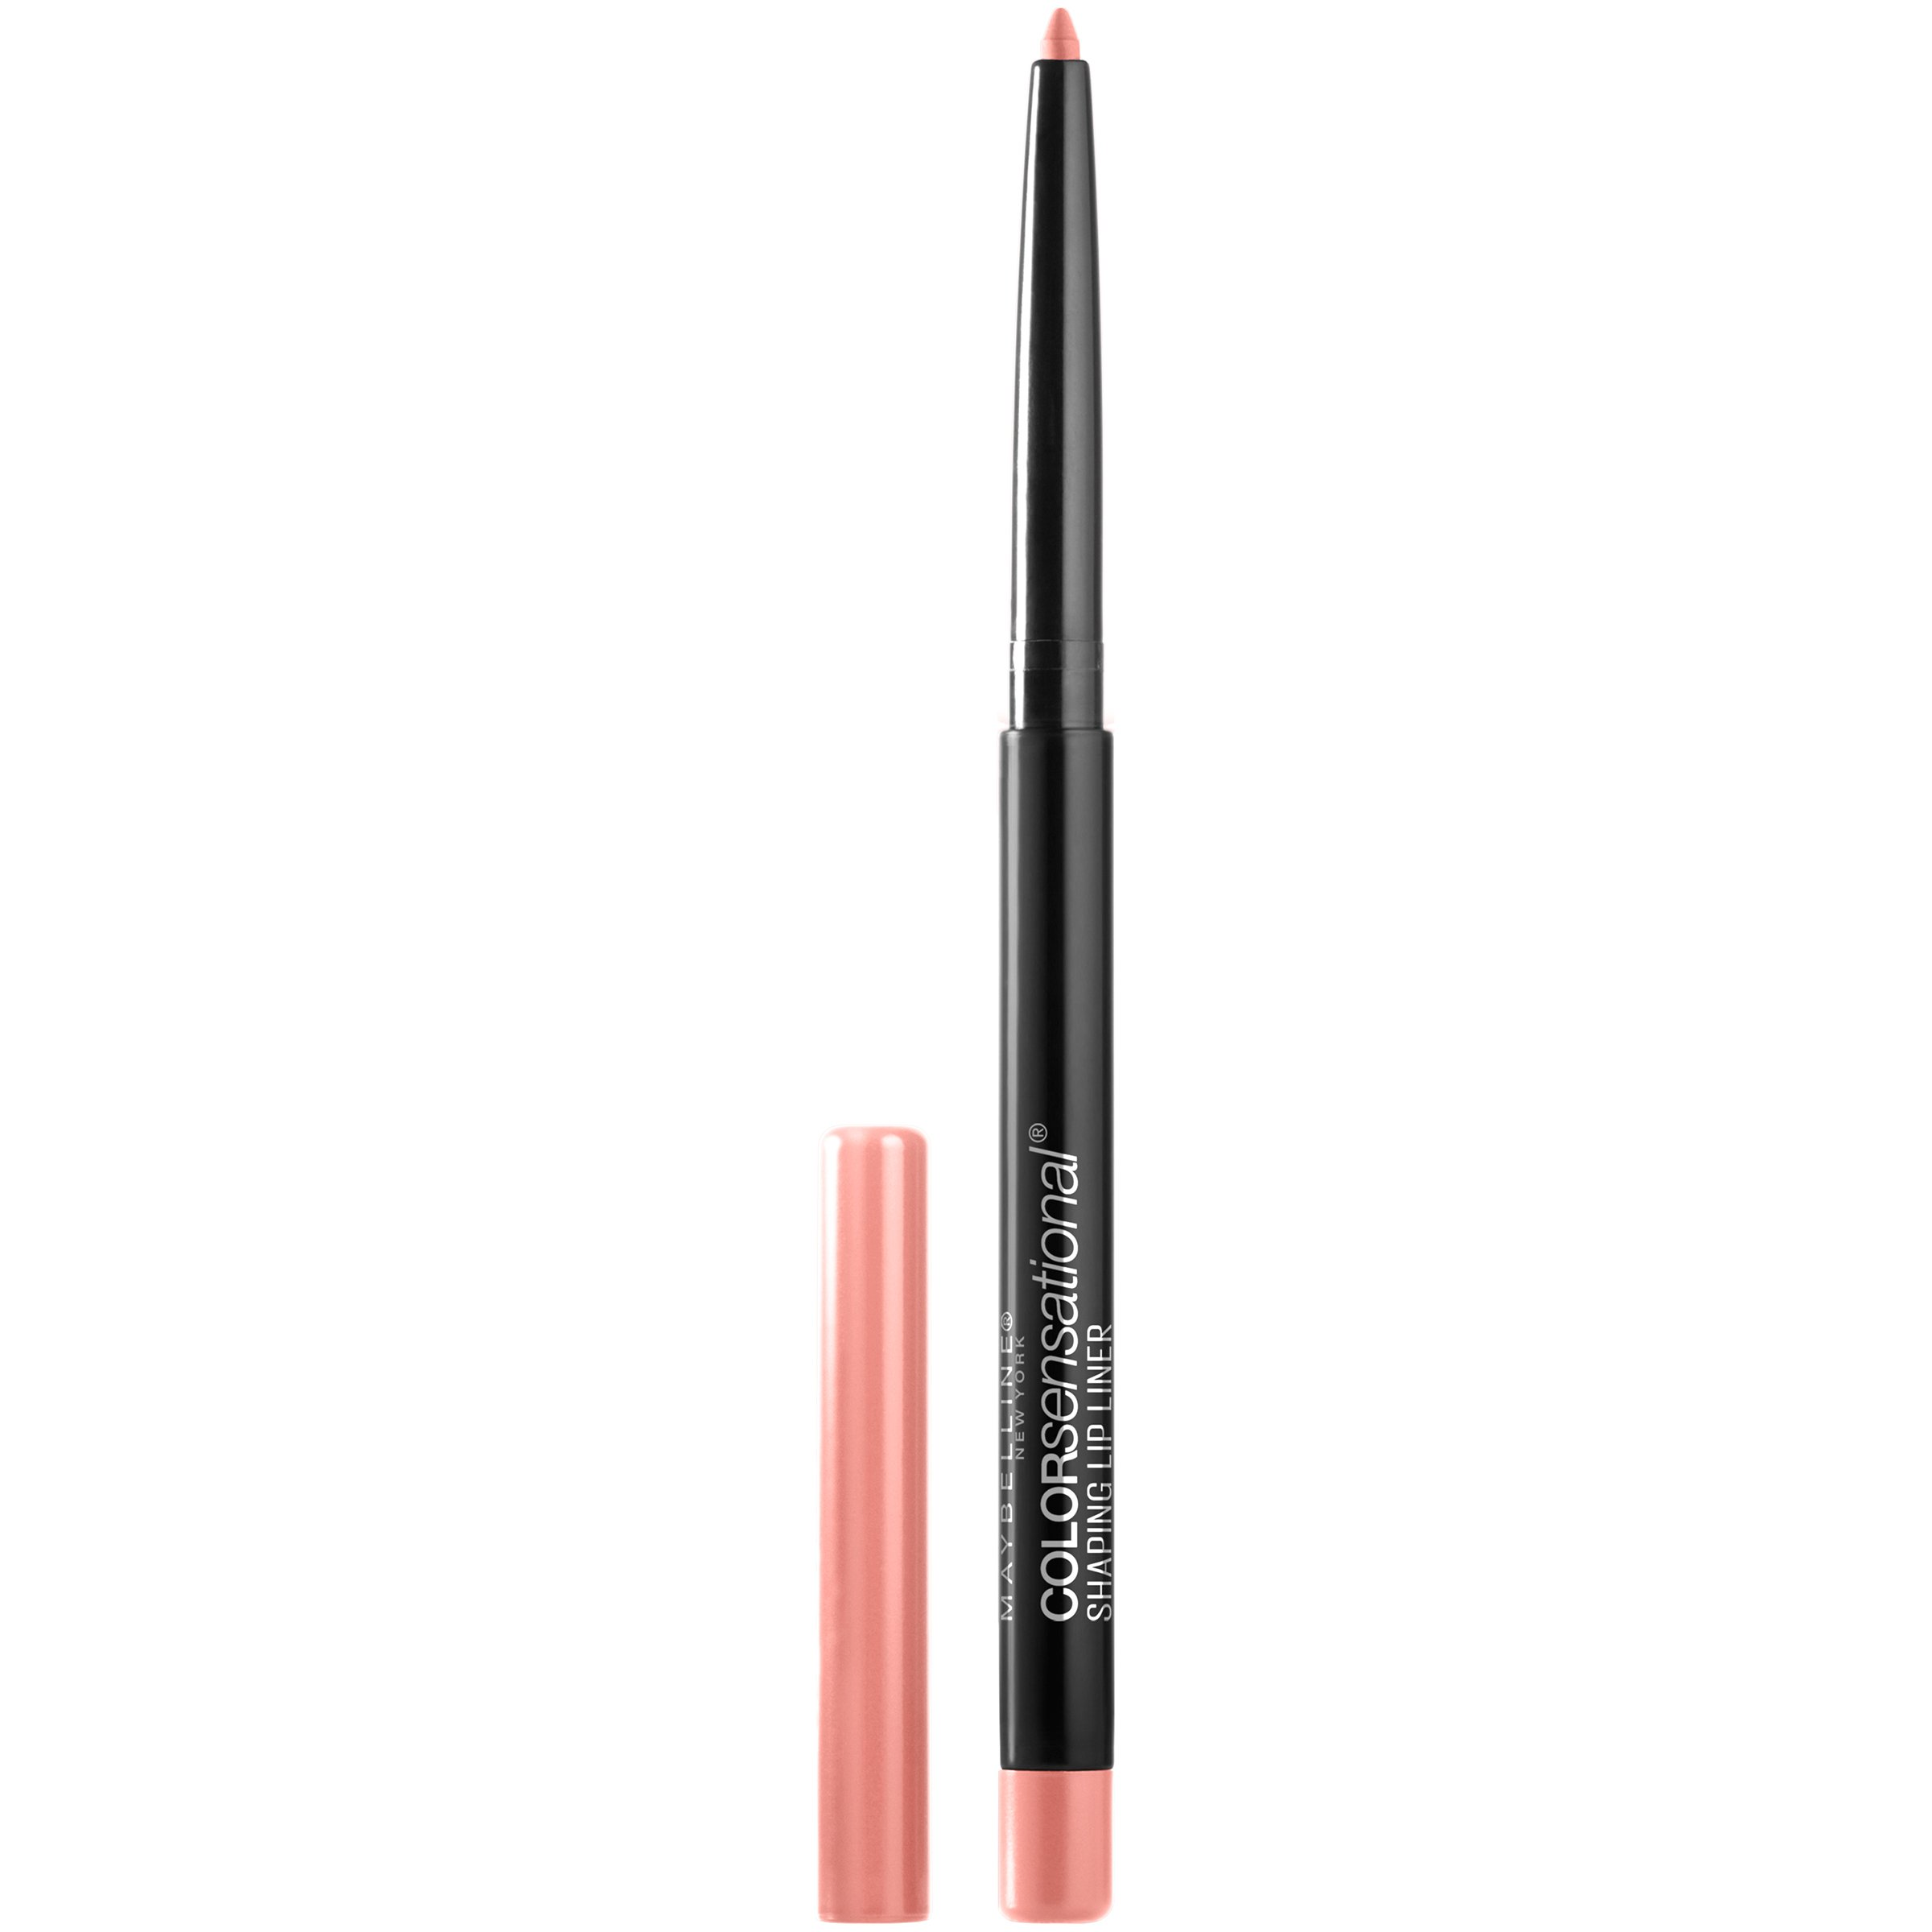 Maybelline New York Makeup Color Sensational Shaping Lip Liner, Purely Nude, Nude Lip Liner, 0.01 oz